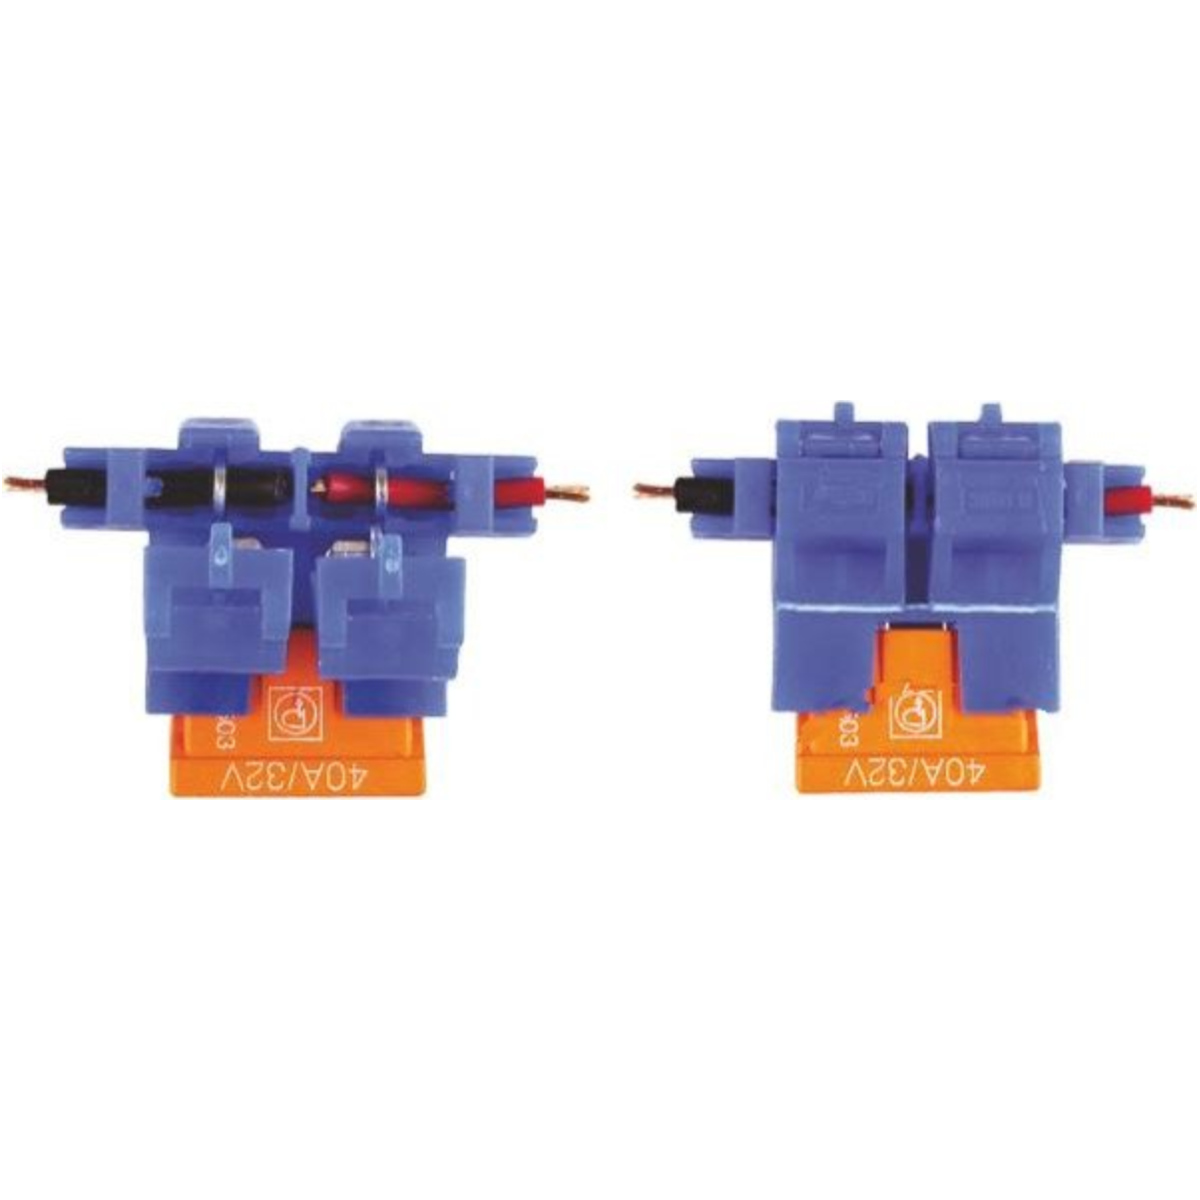 Fuseholder for blade fuses